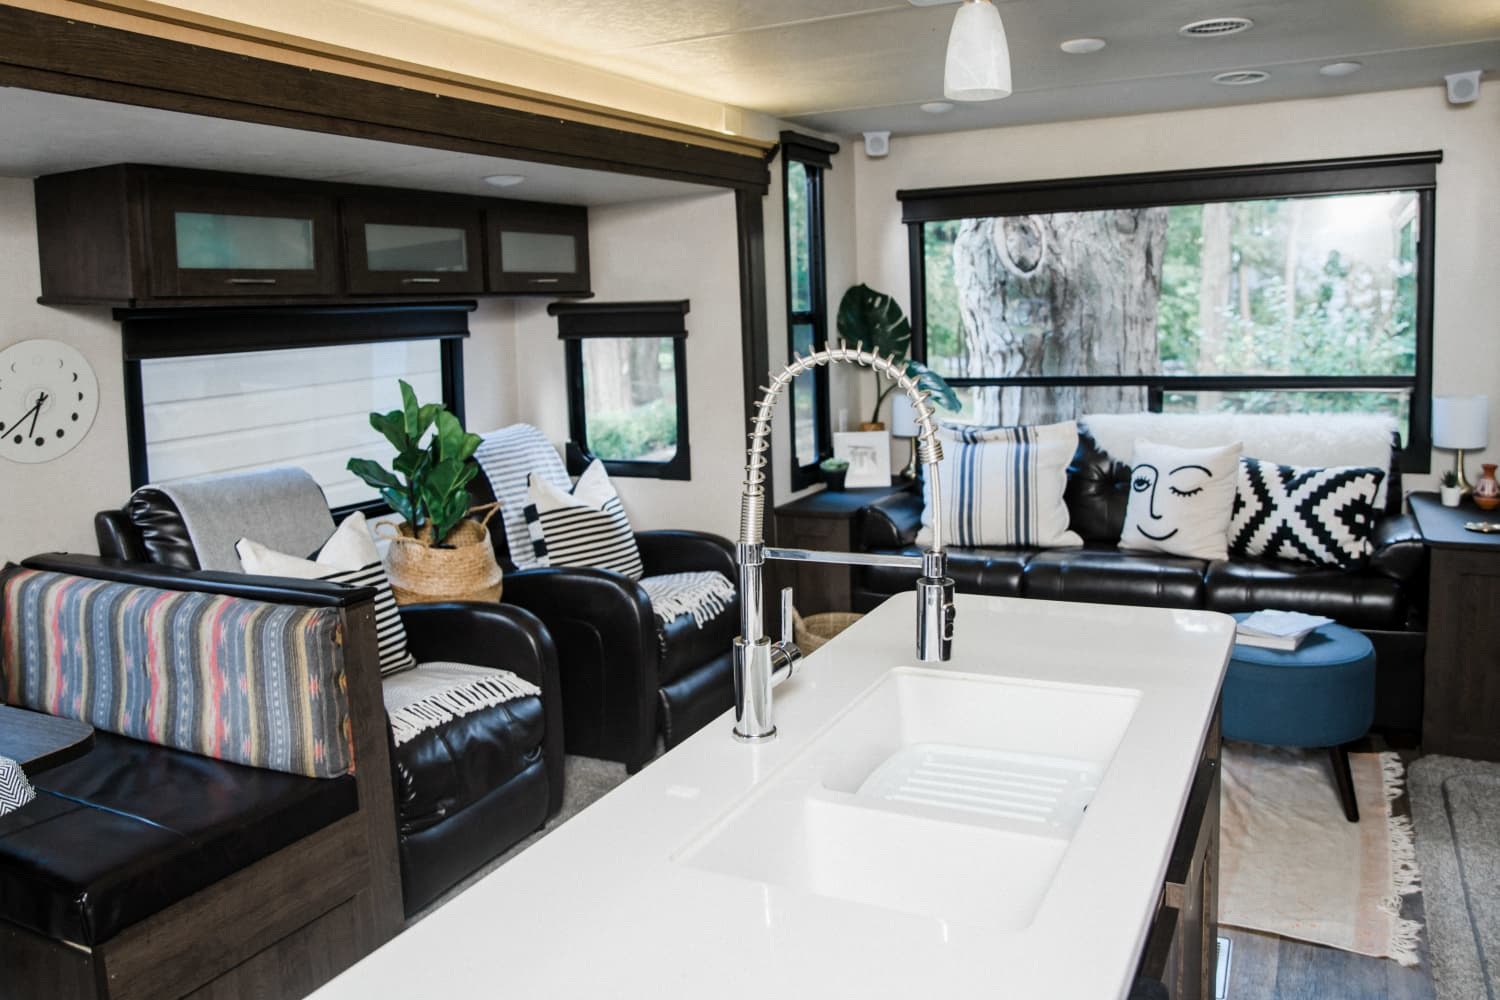 These Tiny Tweaks Turned a Photographer's Camper into a Cozy Home